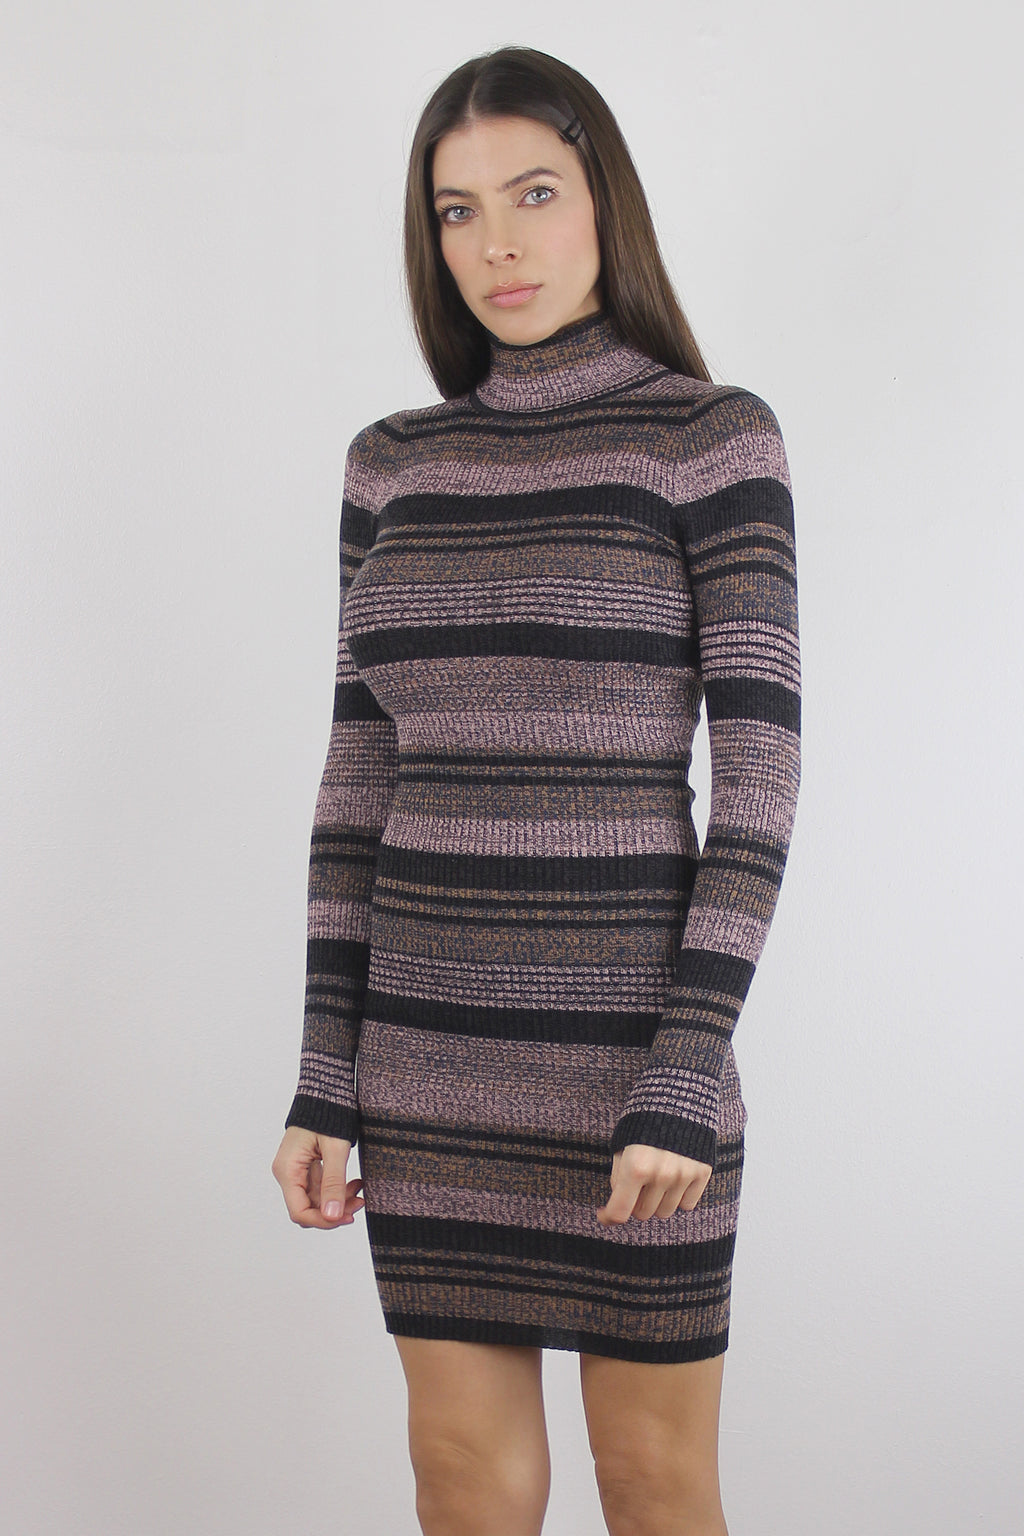 Mauve striped fitted knit turtleneck dress.